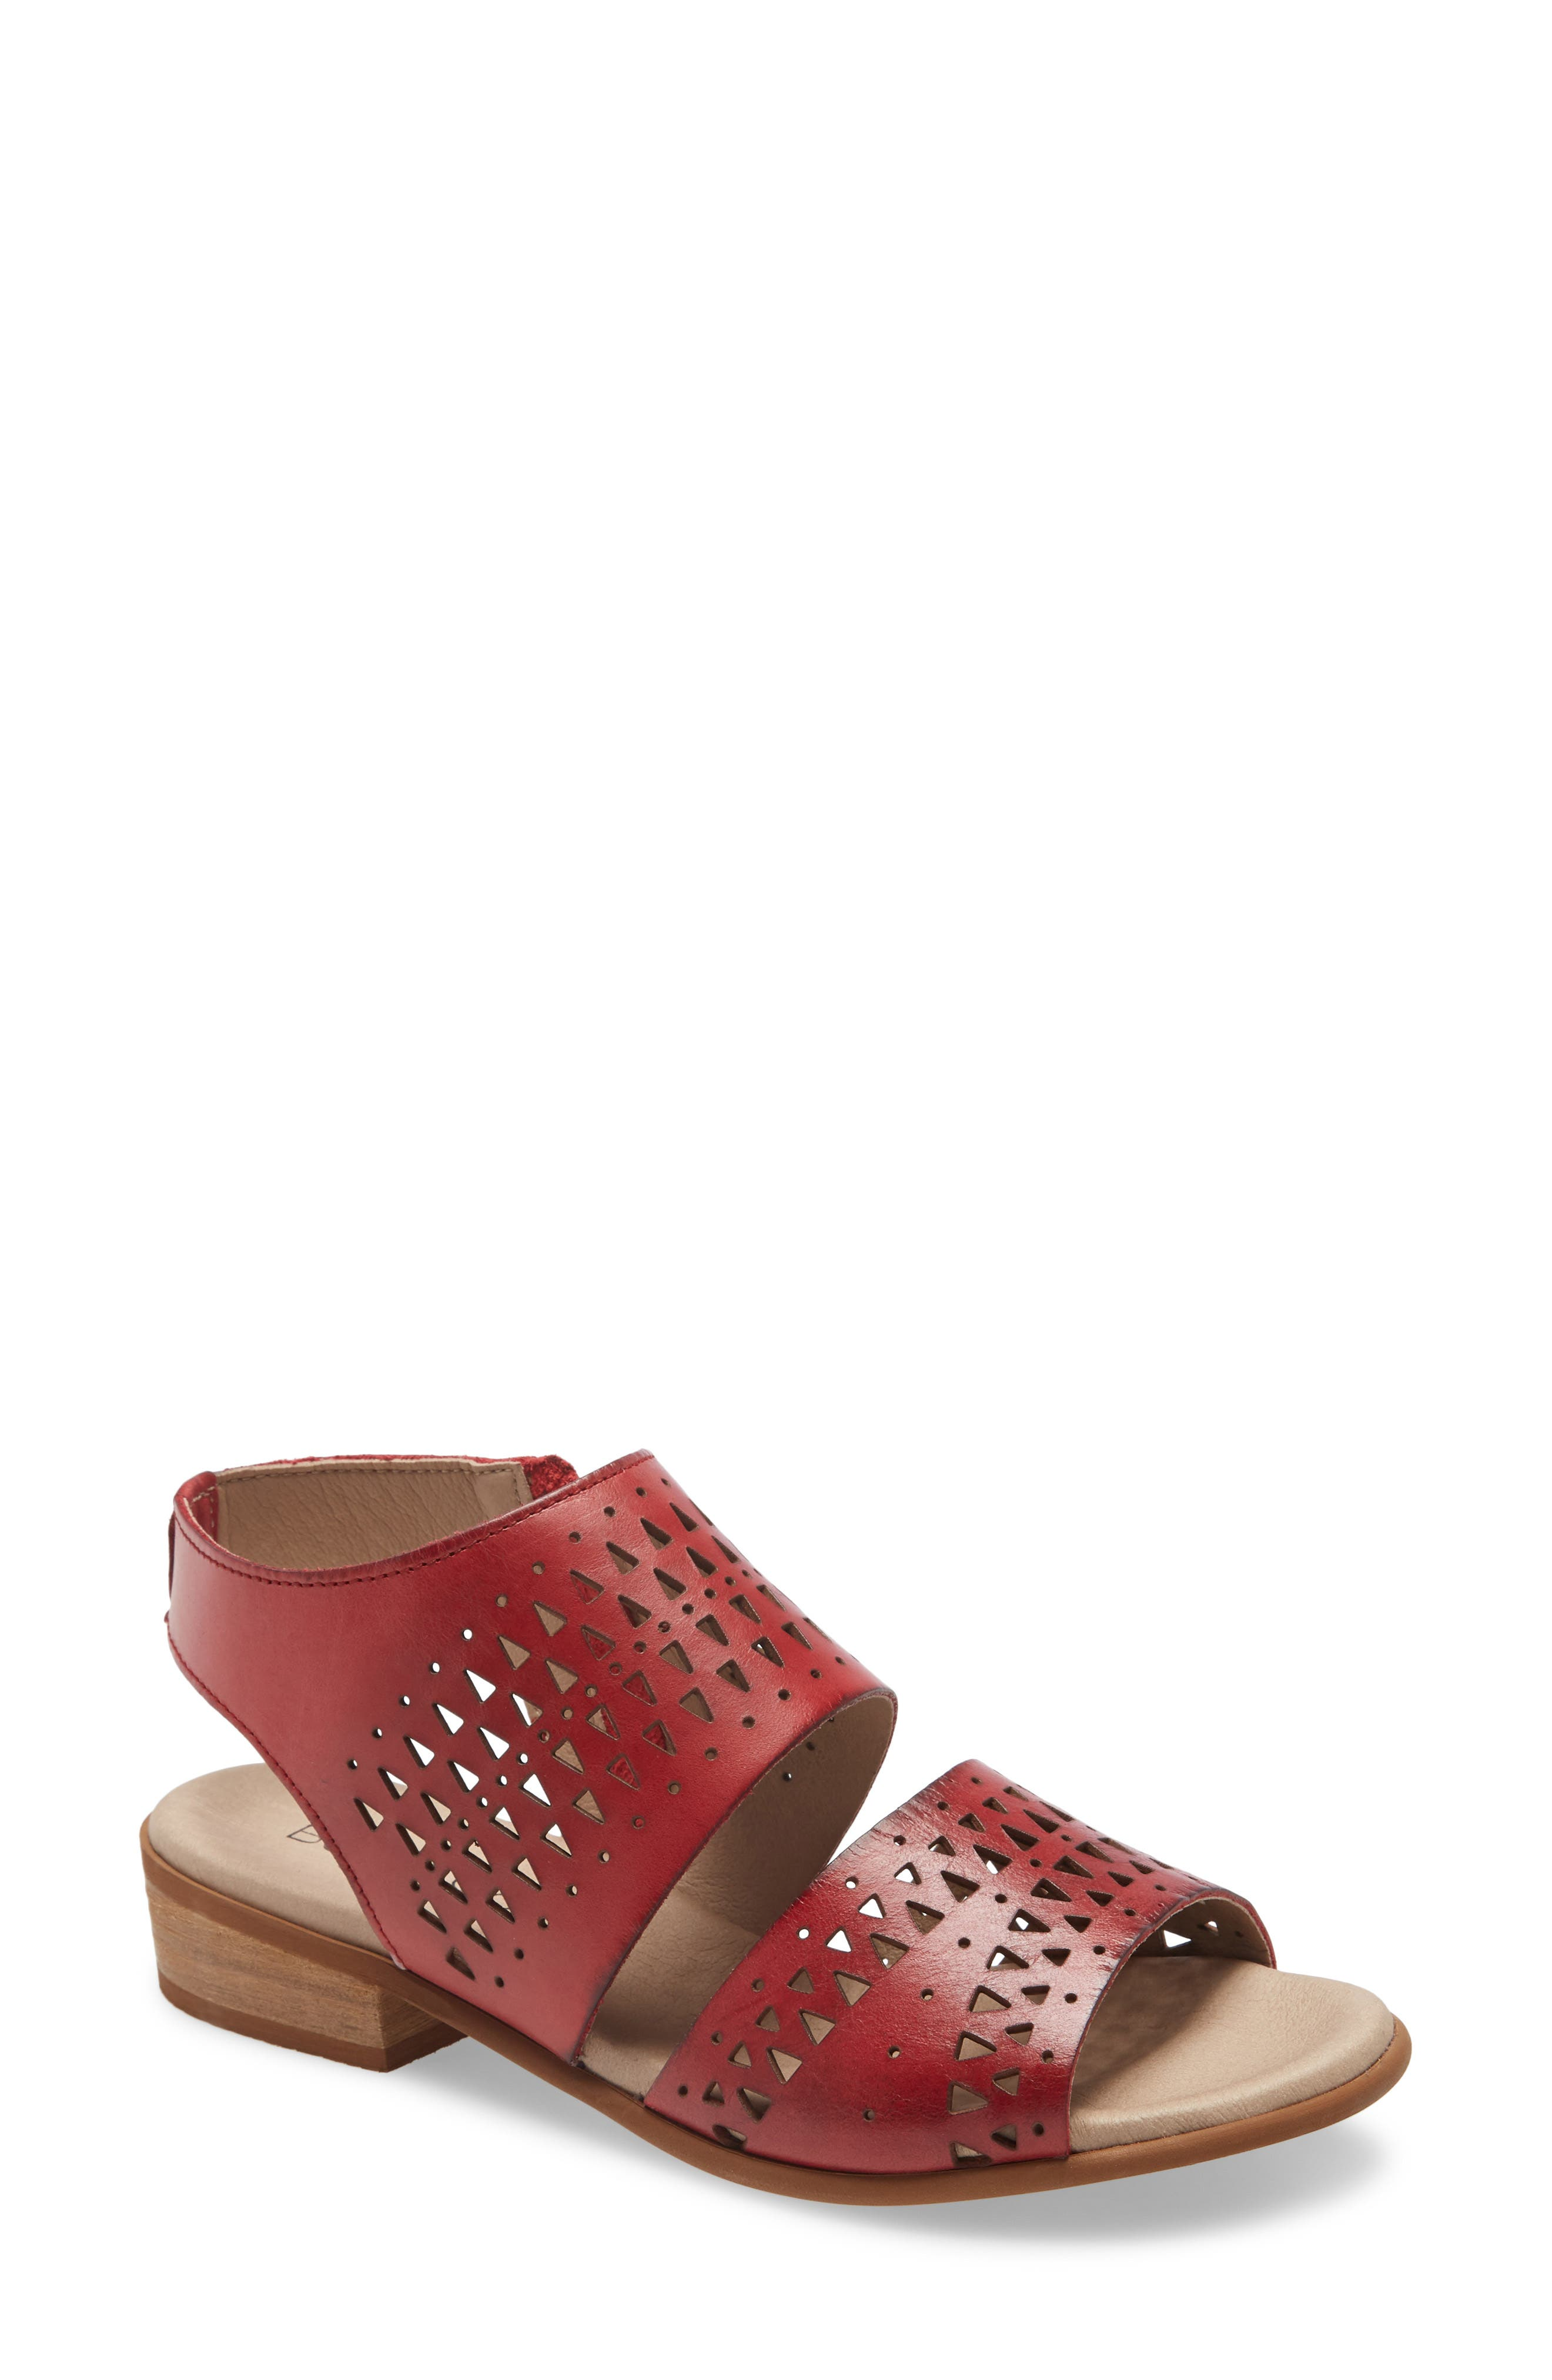 Geometric perforations bring visual interest to a chic sandal furnished with a cushy memory foam footbed that provides lasting comfort. Style Name: Bos. & Co. Mylo Sandal (Women). Style Number: 6002120. Available in stores.